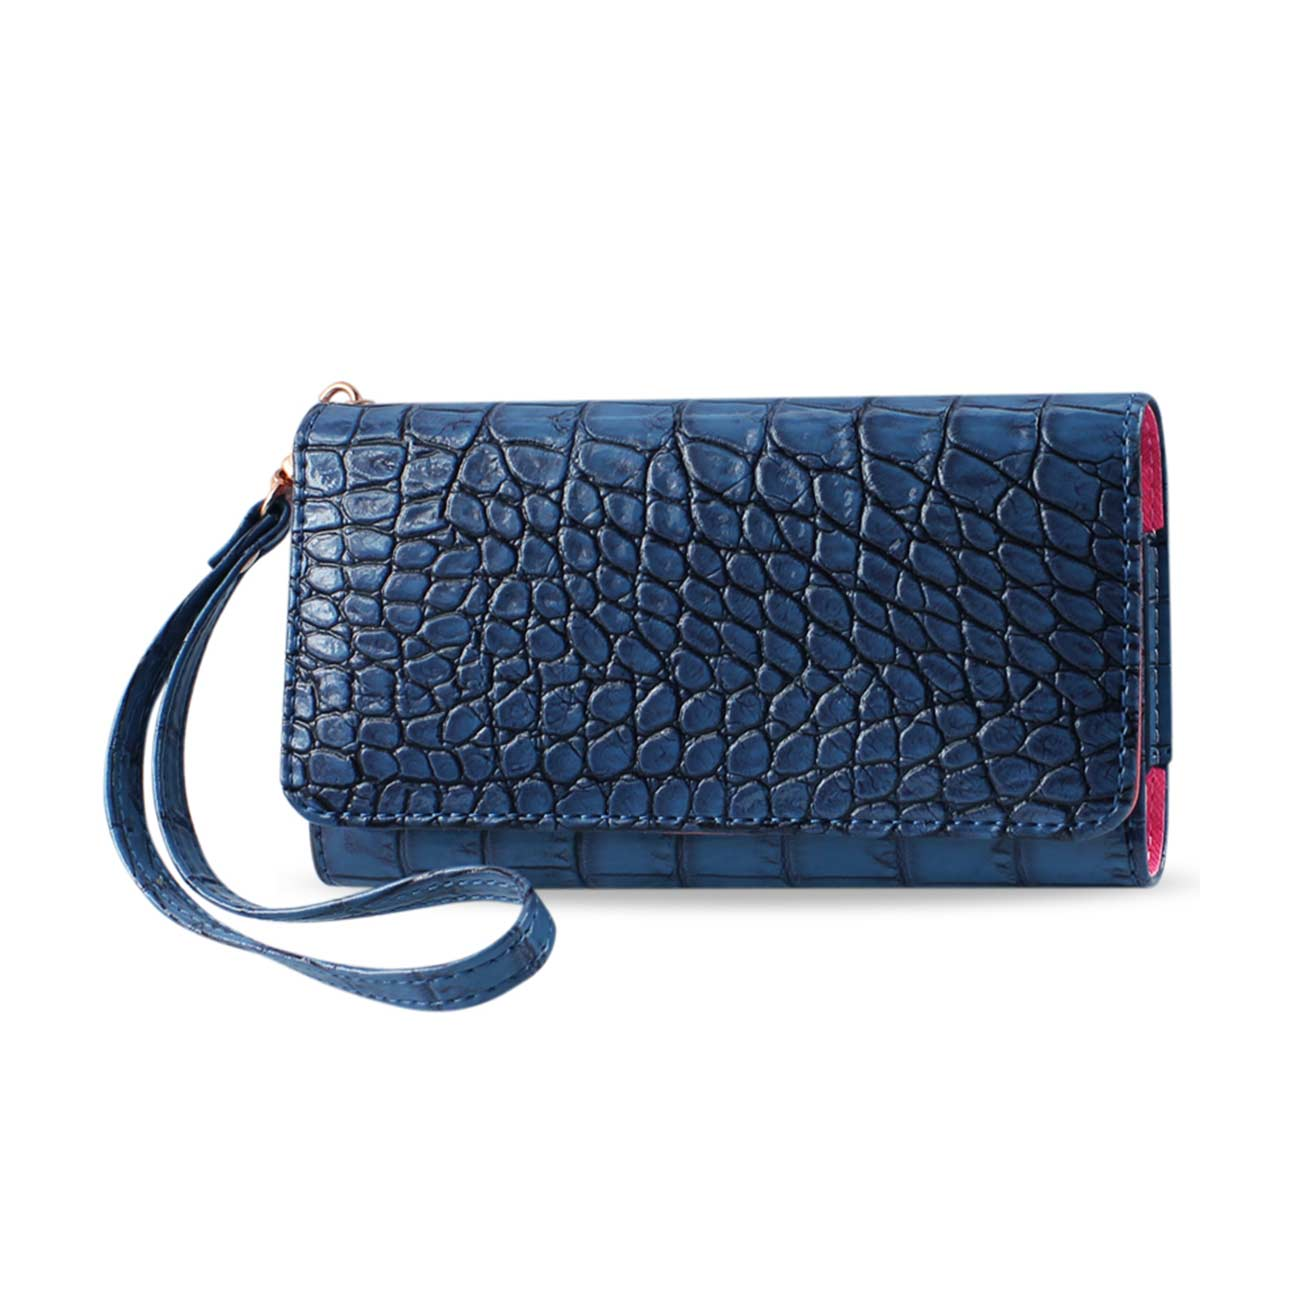 CROCODILE PATTERN PURSE WALLET CASE SAMSUNG GALAXY NOTE3/NOTE2 NAVY (6.3X2.9X0.5 INCHES)